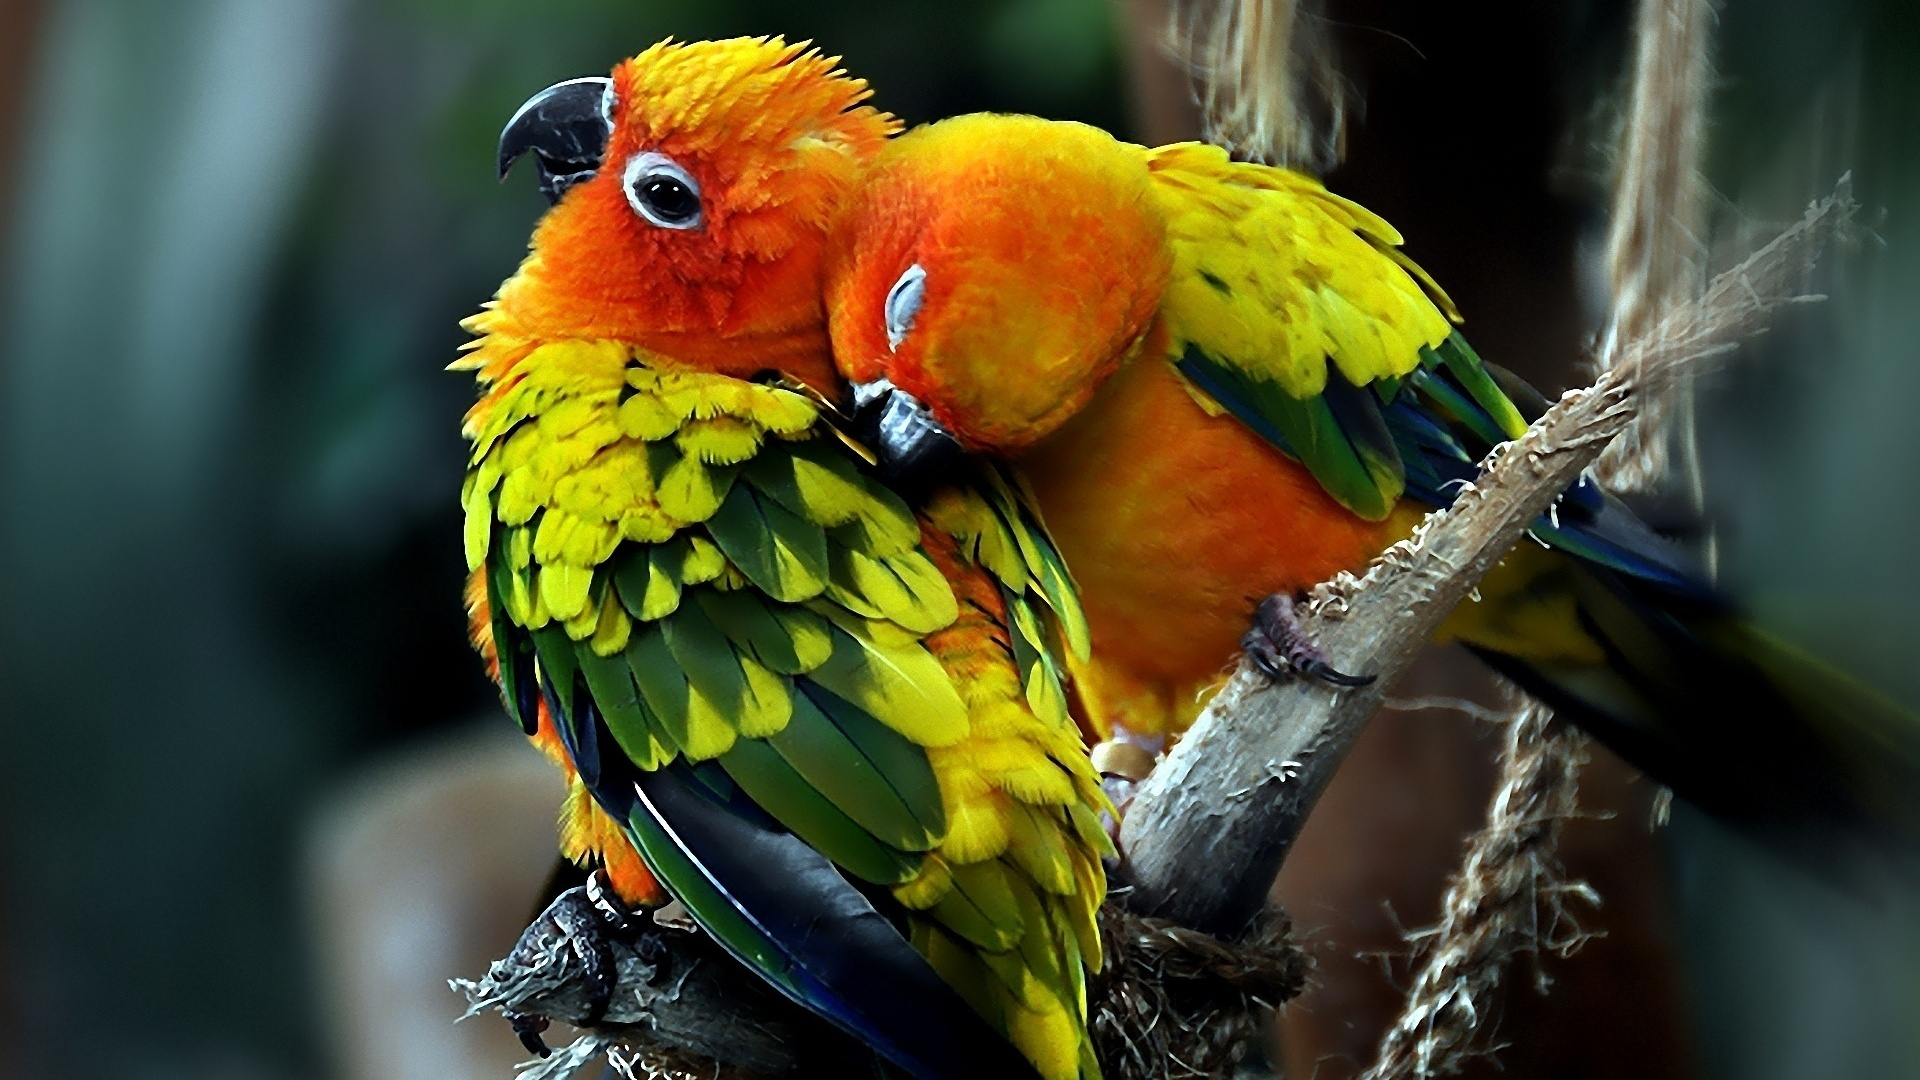 Love Birds Wallpaper Free Download For Pc: Aves Wallpaper HD